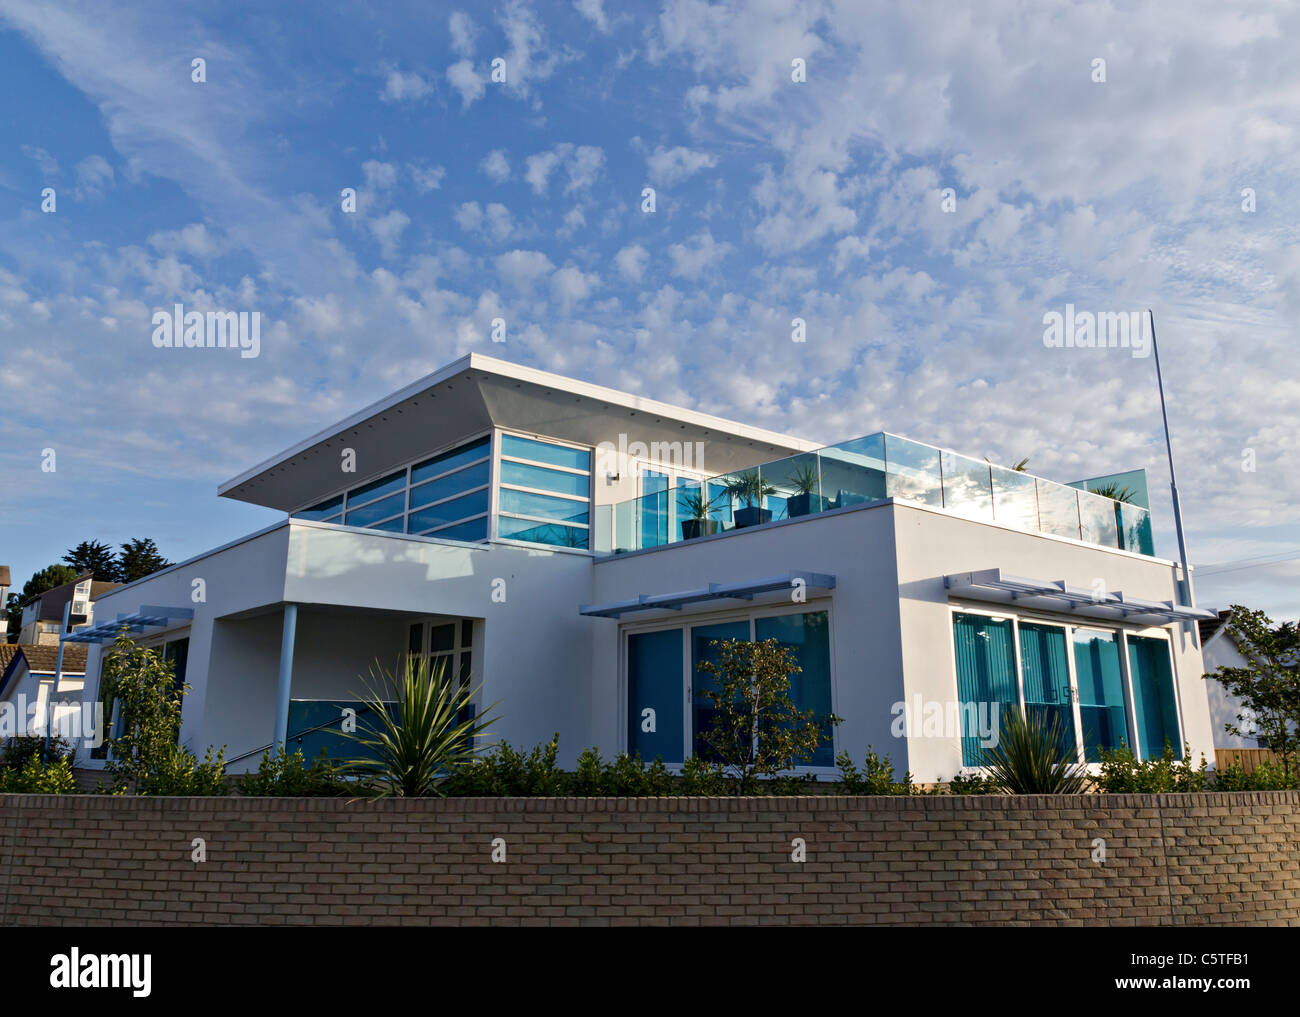 Sandbanks peninsula poole dorset typical modern - Architects poole dorset ...